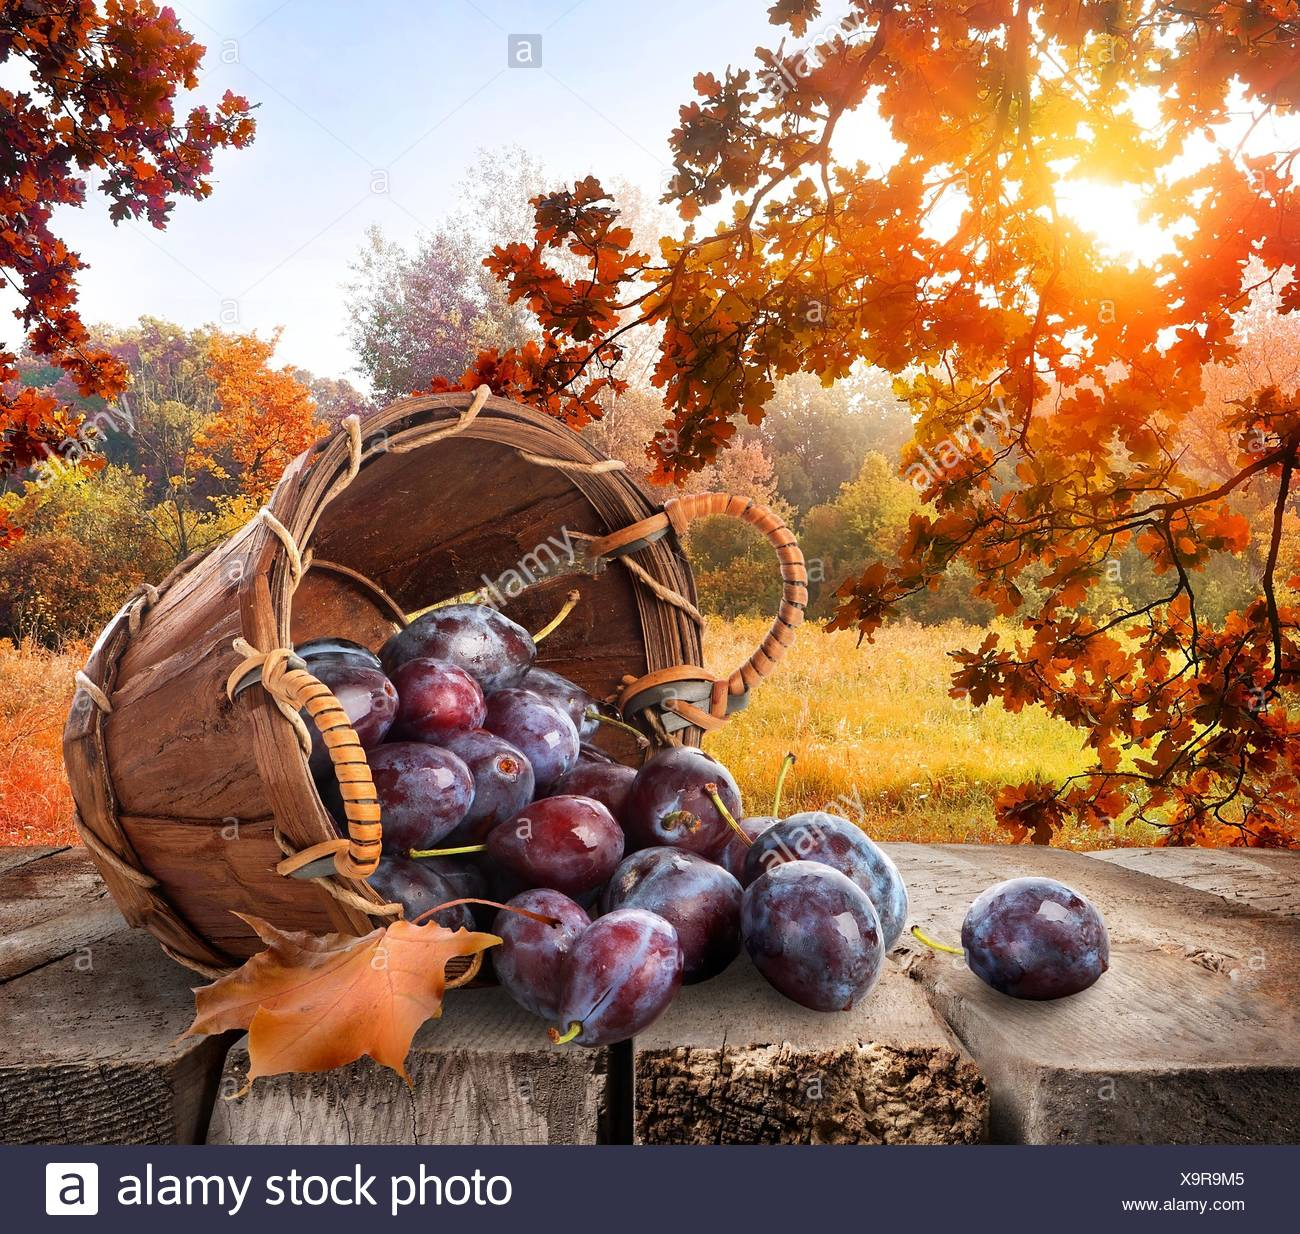 Plums in a basket on wooden table and autumn landscape. Stock Photo